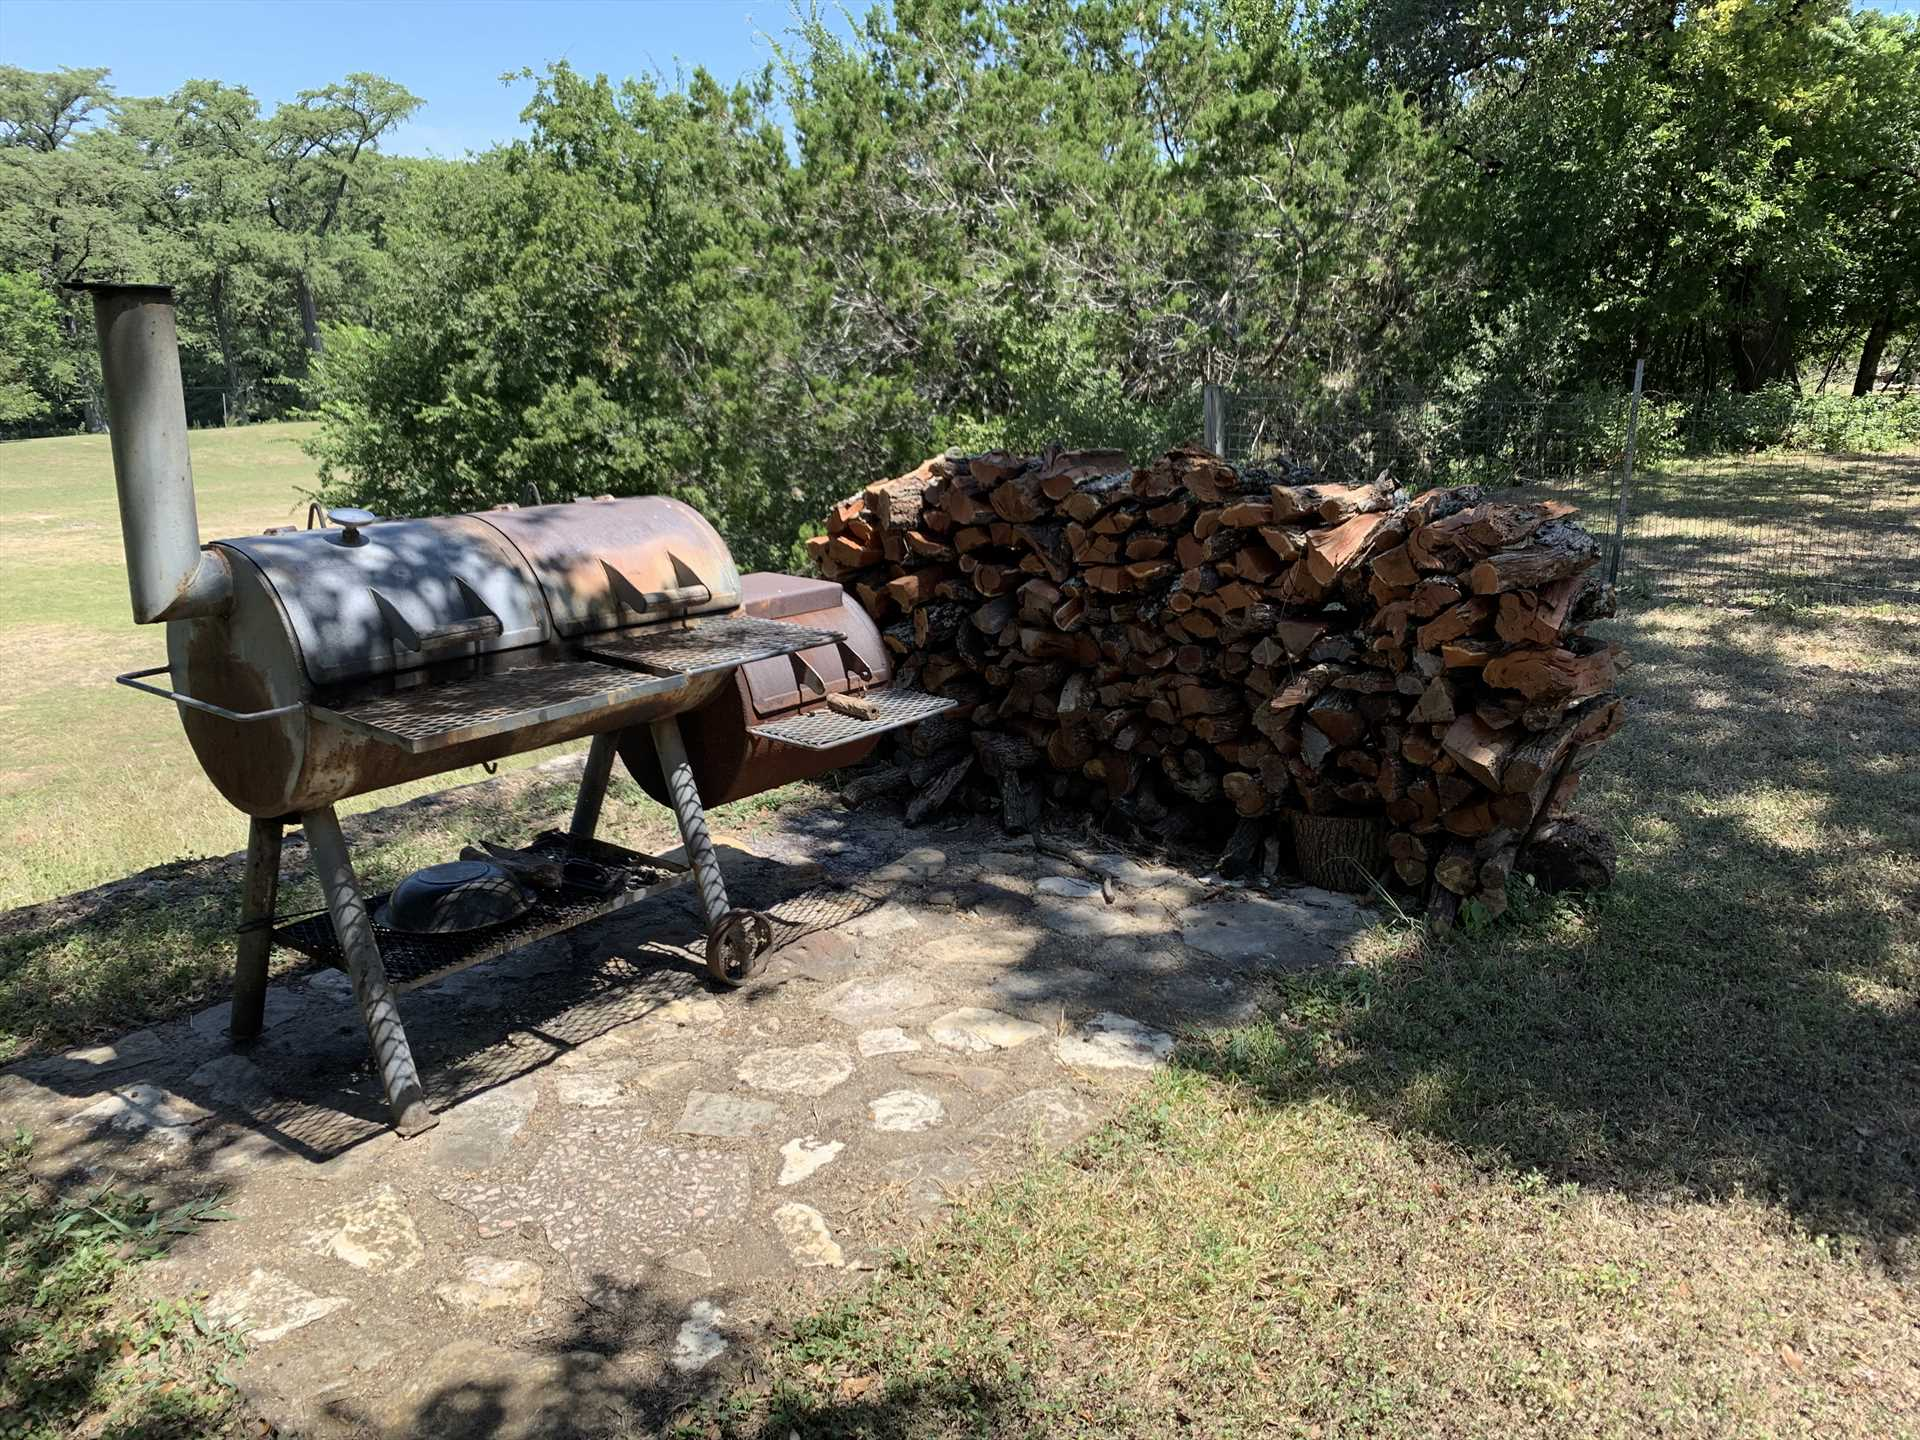 Bring along your charcoal, wood chips, and BBQ skills! It's not Texas without a hearty BBQ.